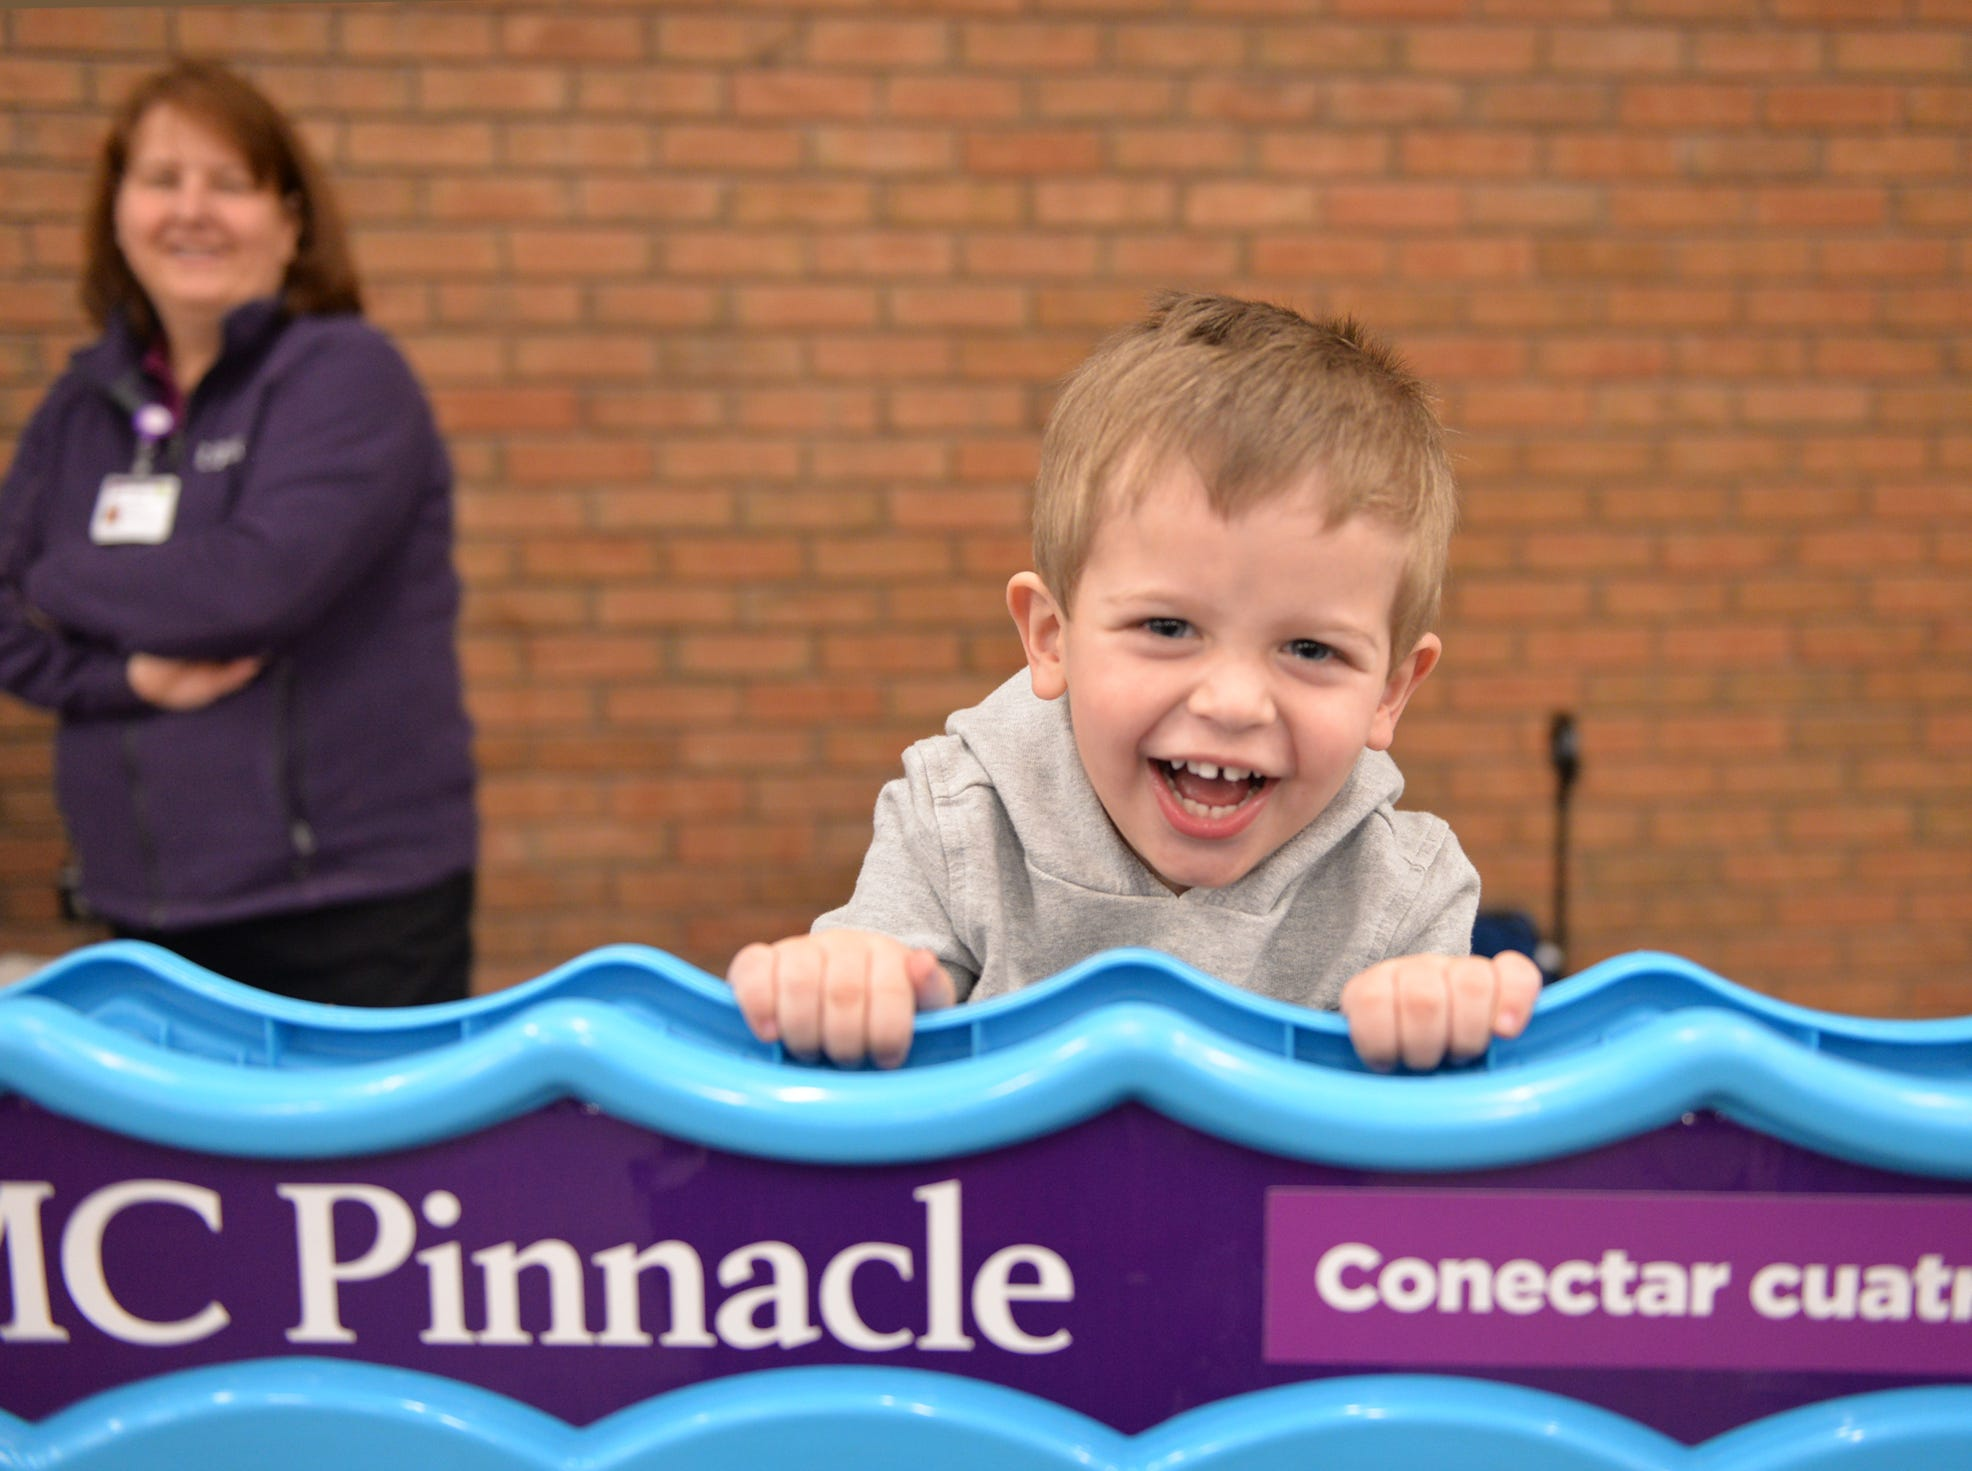 Two-year old Braxtin Rhen of Lebanon enjoys one of the kids games at The Lebanon Rotary Club's Bologna Fest & Winter Carnival held on Saturday, January 26 at the Lebanon Valley Expo Center.